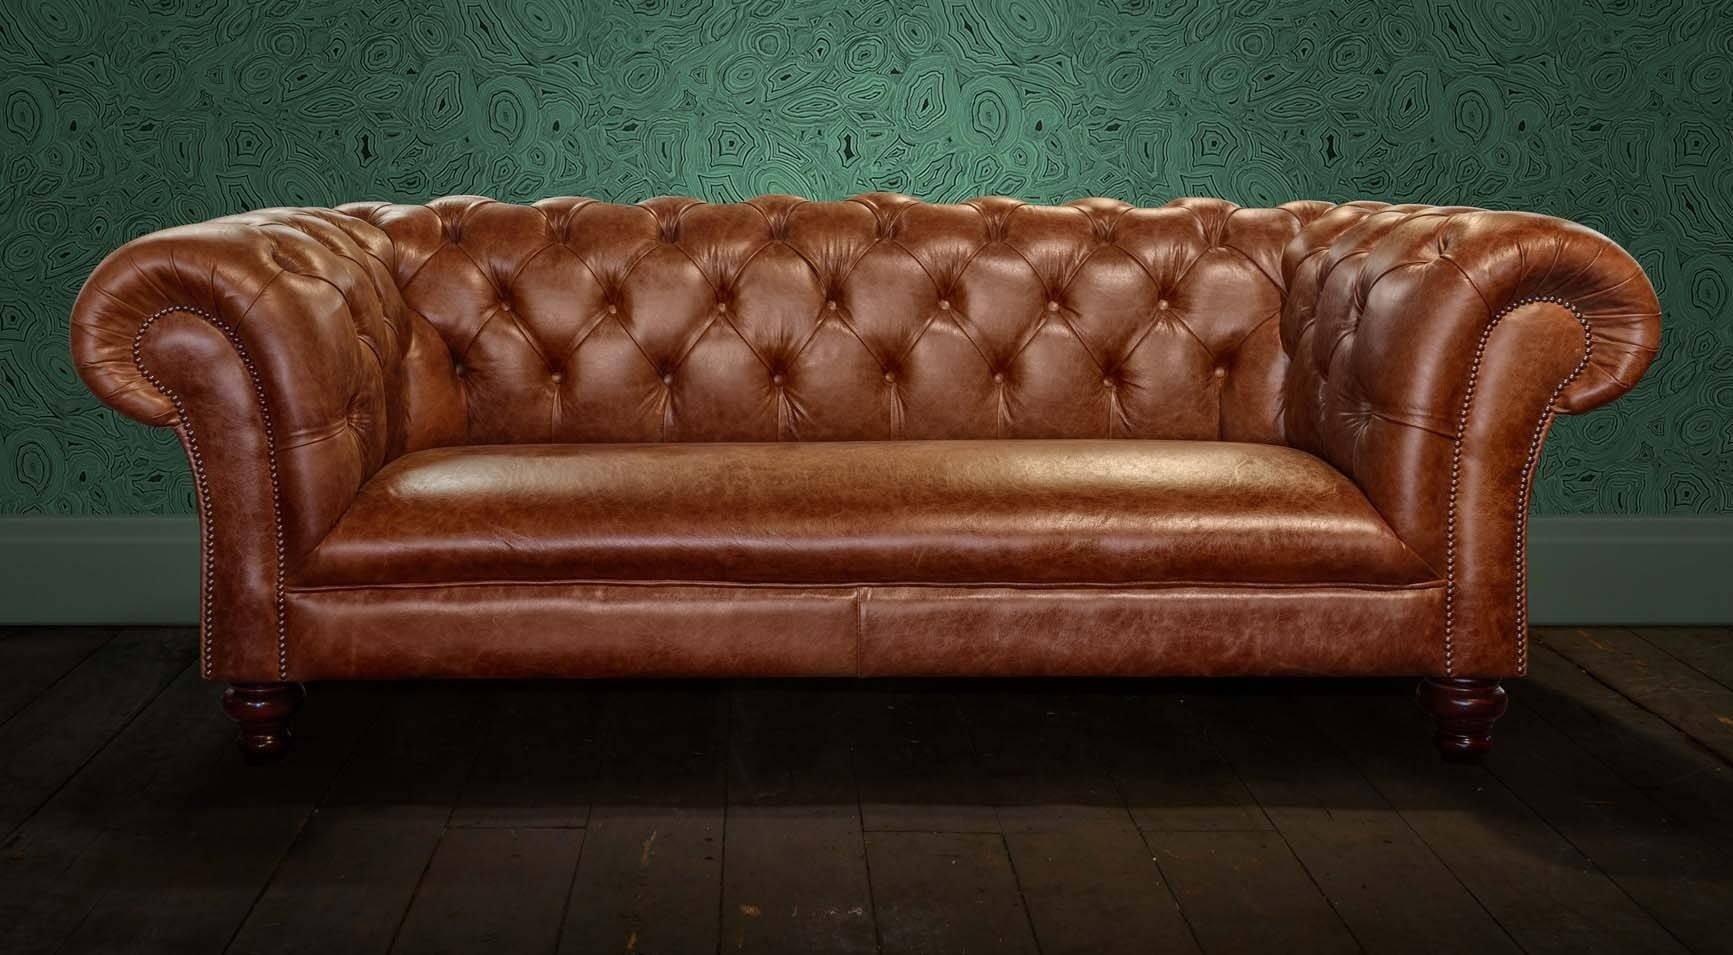 Chesterfields Of England | The Original Chesterfield Company intended for Chesterfield Sofas And Chairs (Image 6 of 15)